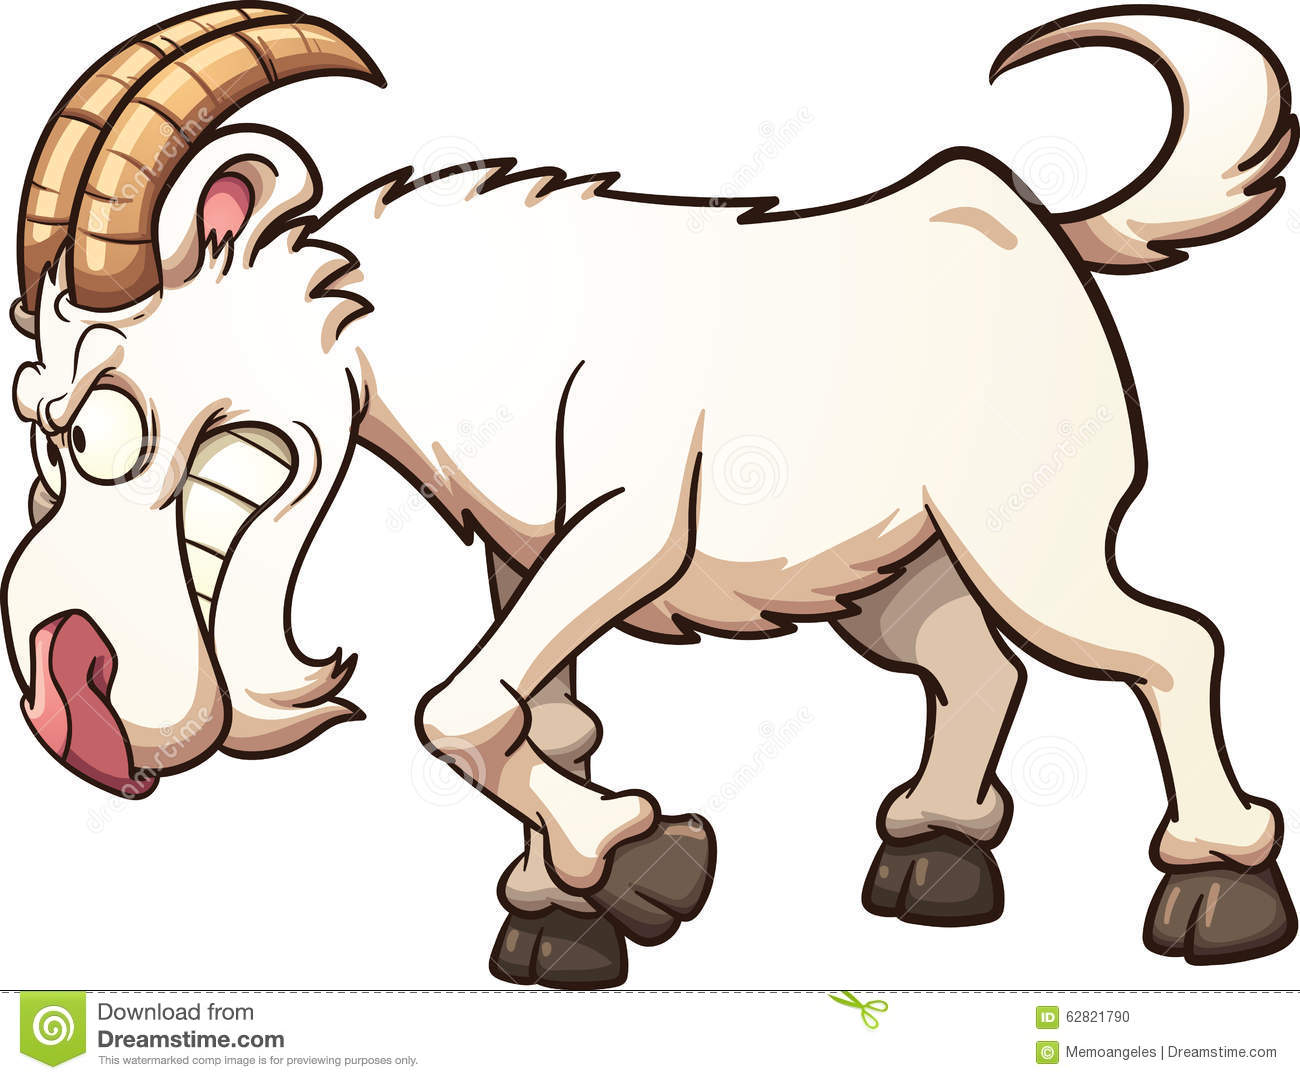 Angry goat stock vector. Illustration of cartoon ...